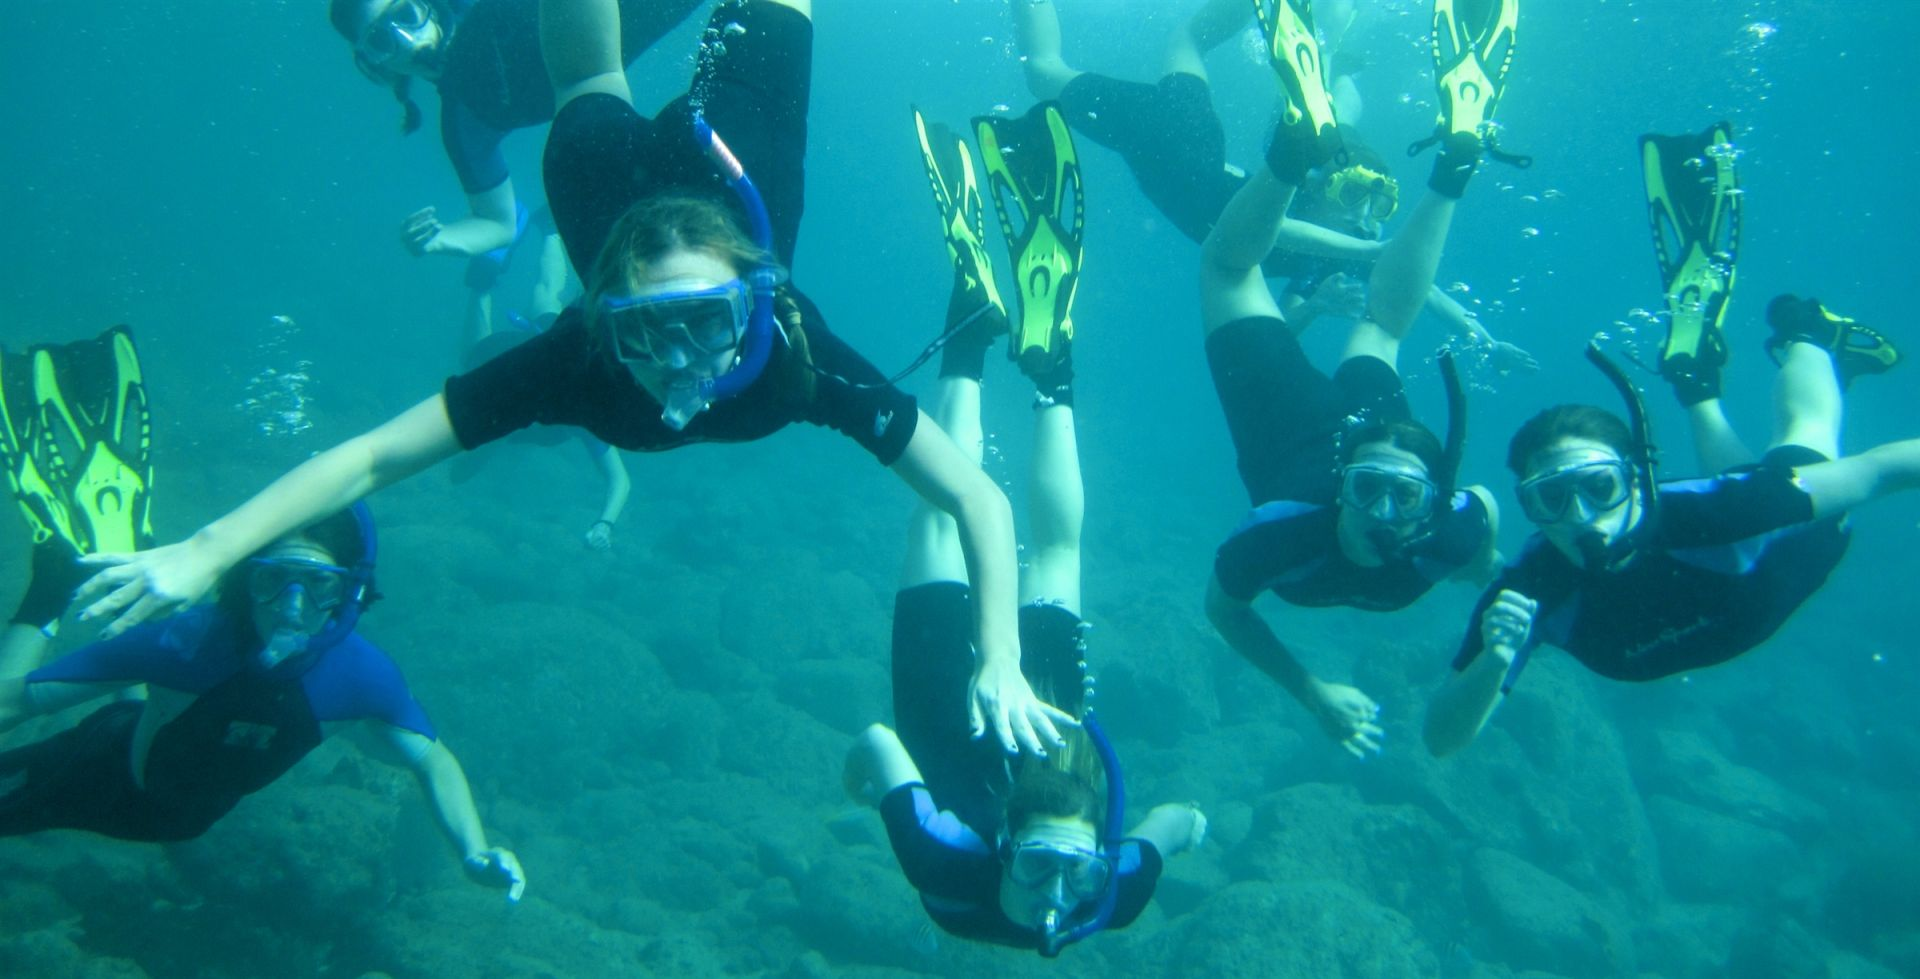 Tabor students snorkeling in Caribbean as they conduct research on coral reefs in Gervais